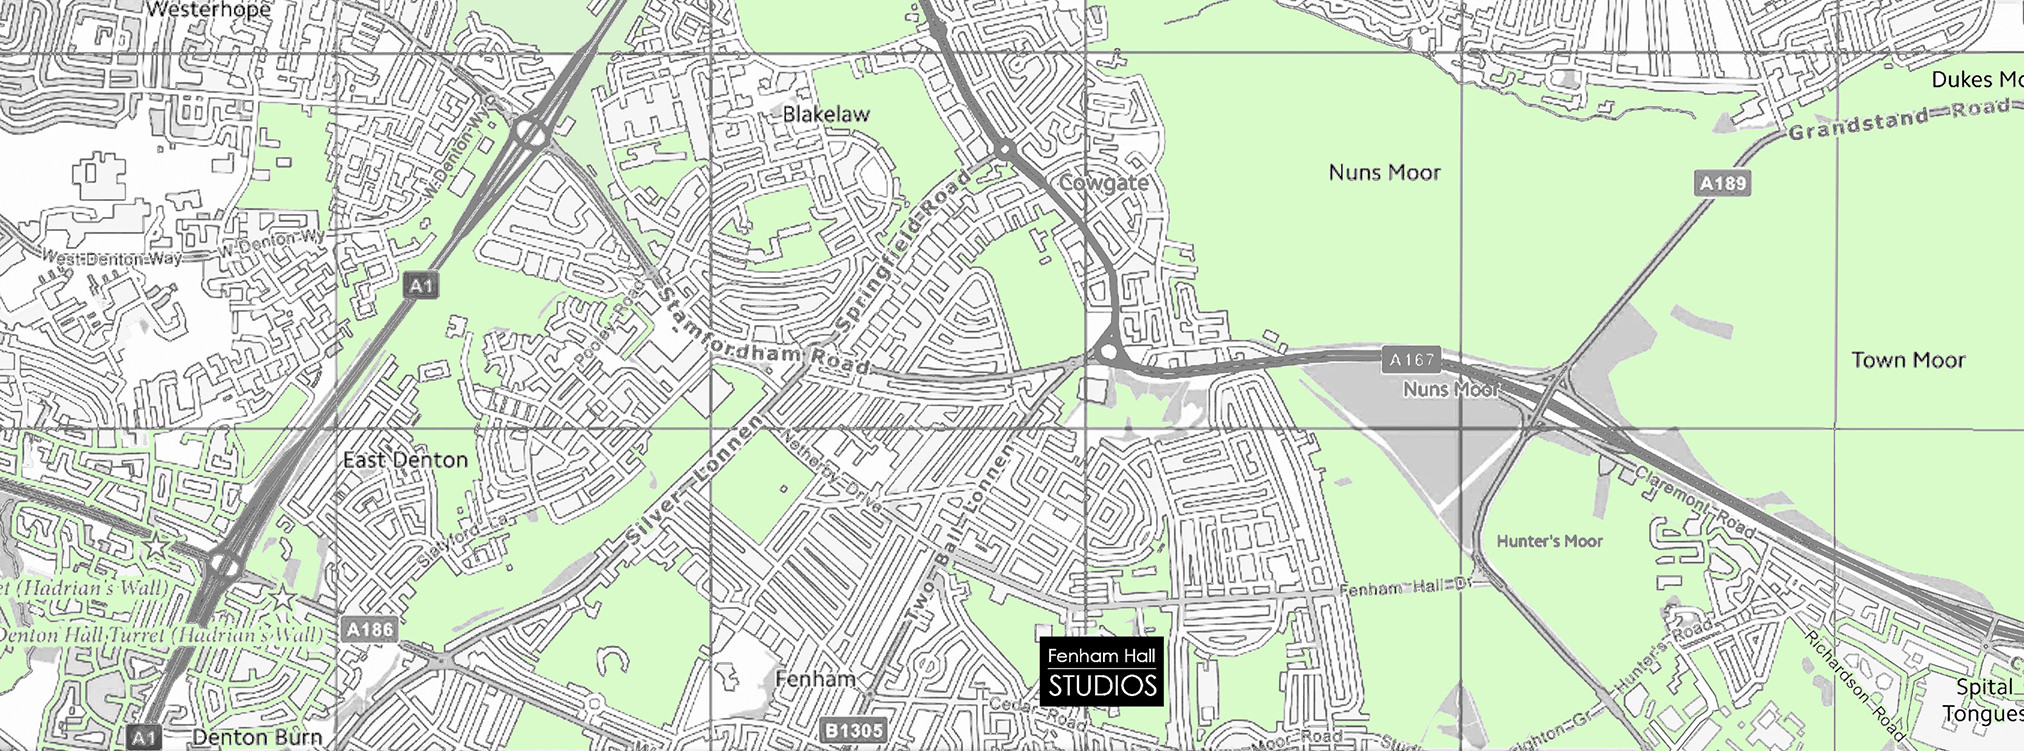 Fenham Hall Studios Map